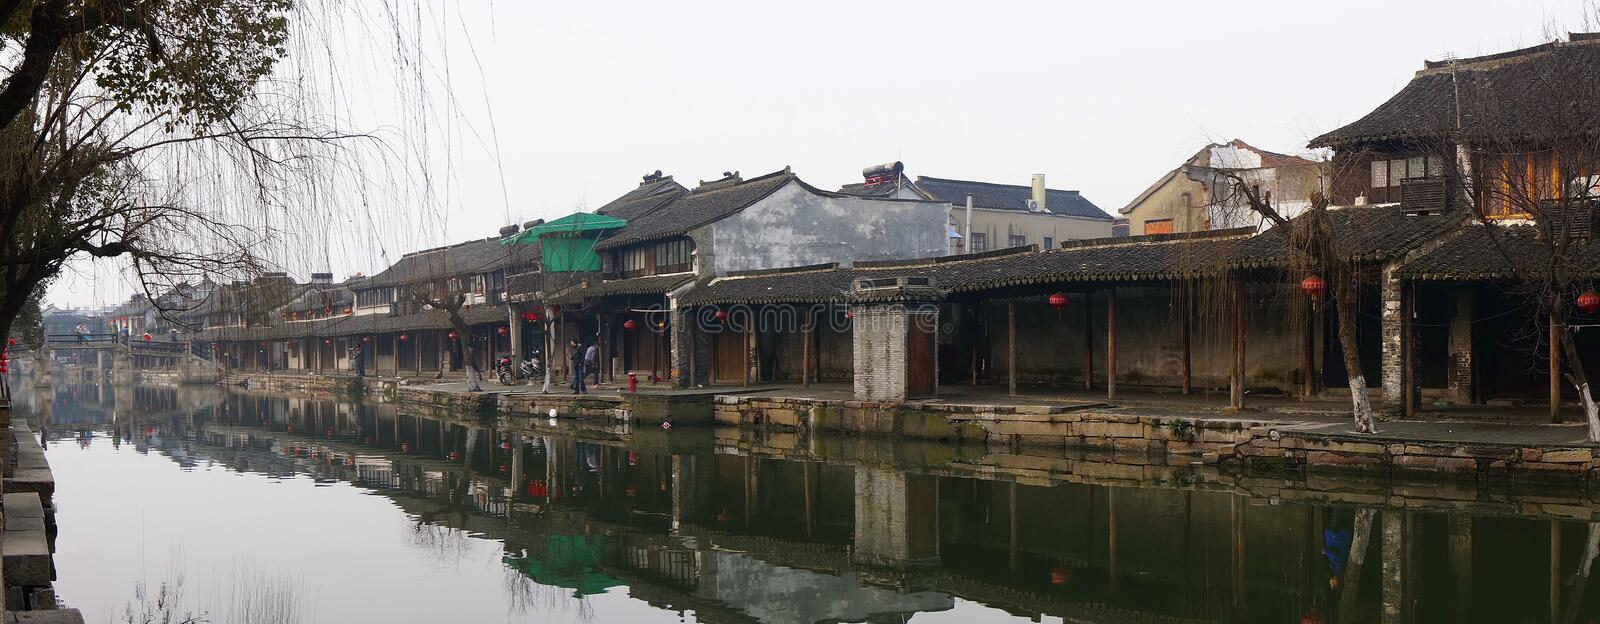 Xitang scenery royalty free stock photography